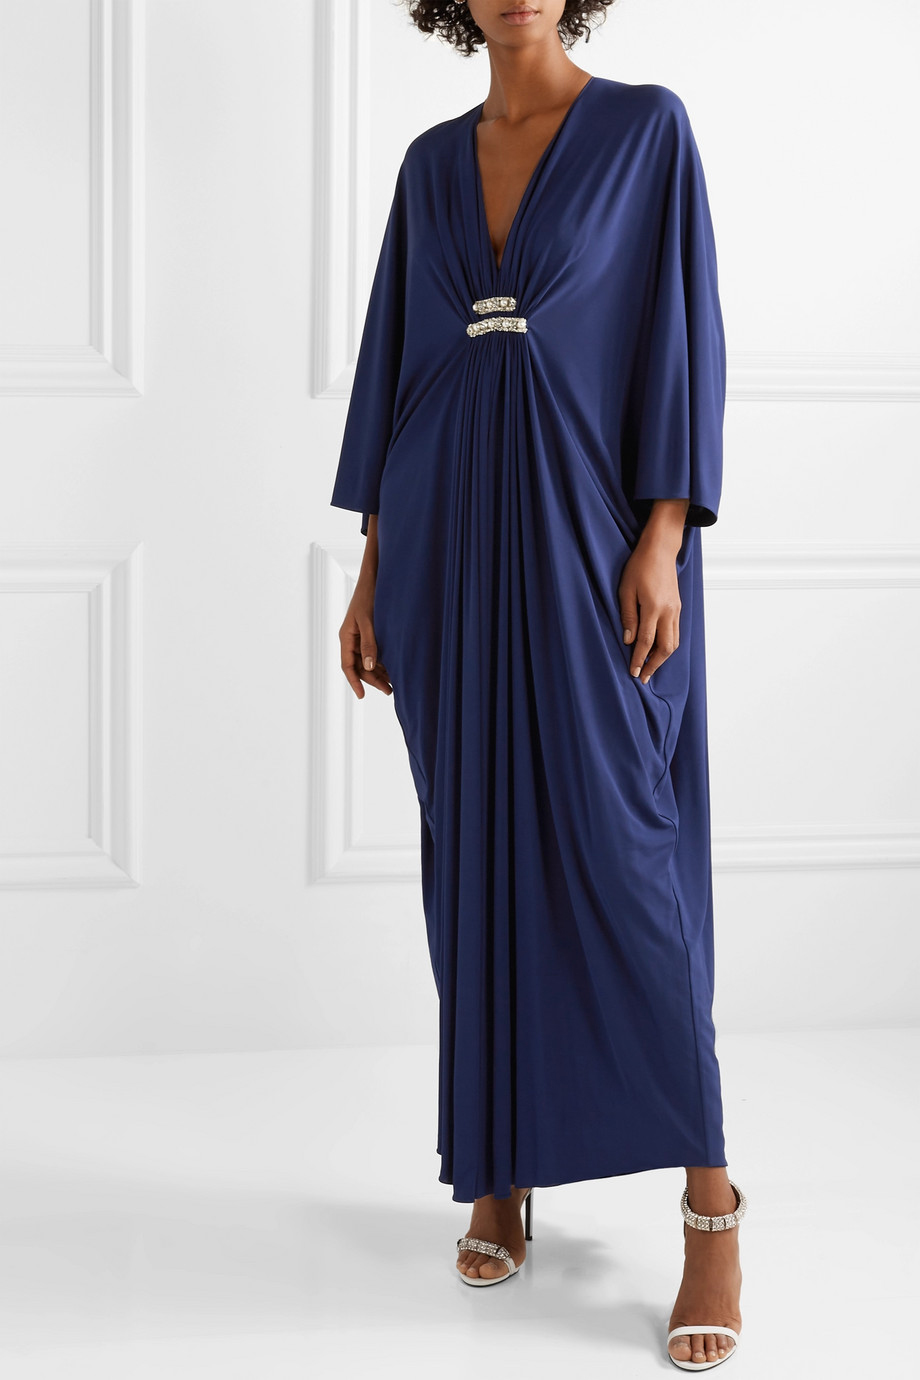 Reem Acra Draped Jersey Maxi Dress